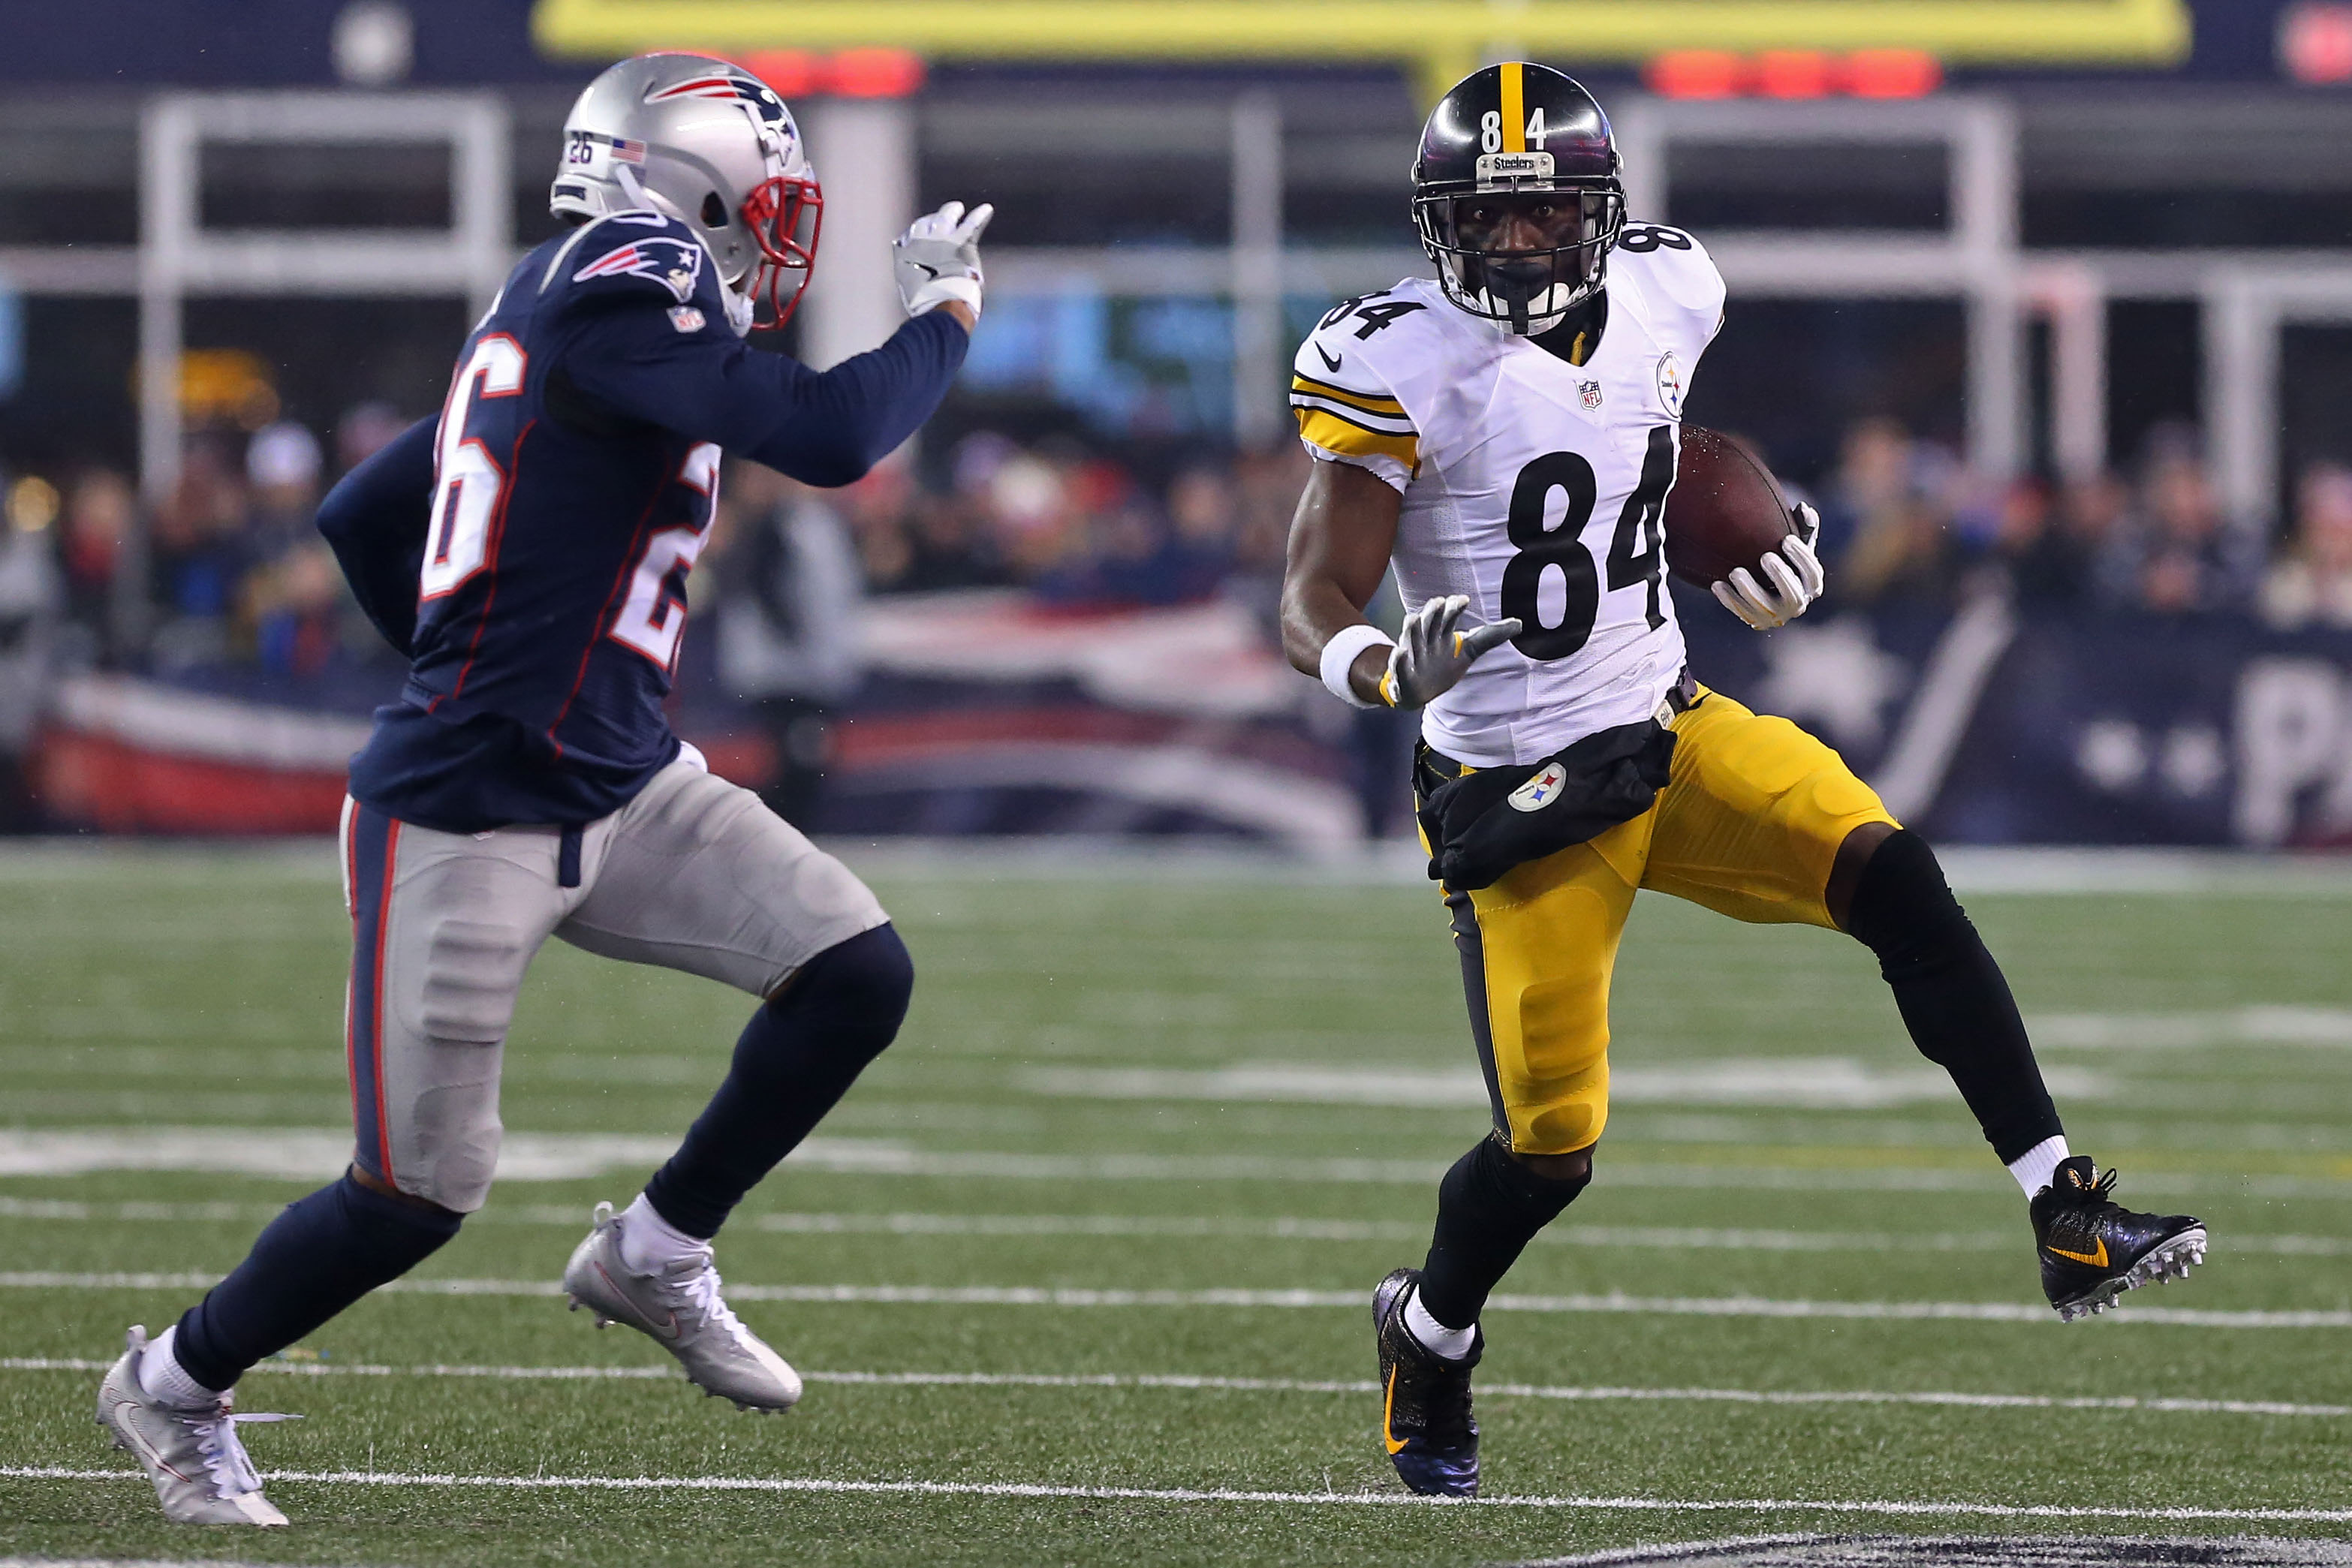 Jan 22, 2017; Foxborough, MA, USA; Pittsburgh Steelers wide receiver Antonio Brown (84) runs with the ball as New England Patriots cornerback Logan Ryan (26) chases in the 2017 AFC Championship Game at Gillette Stadium. Mandatory Credit: Geoff Burke-USA TODAY Sports